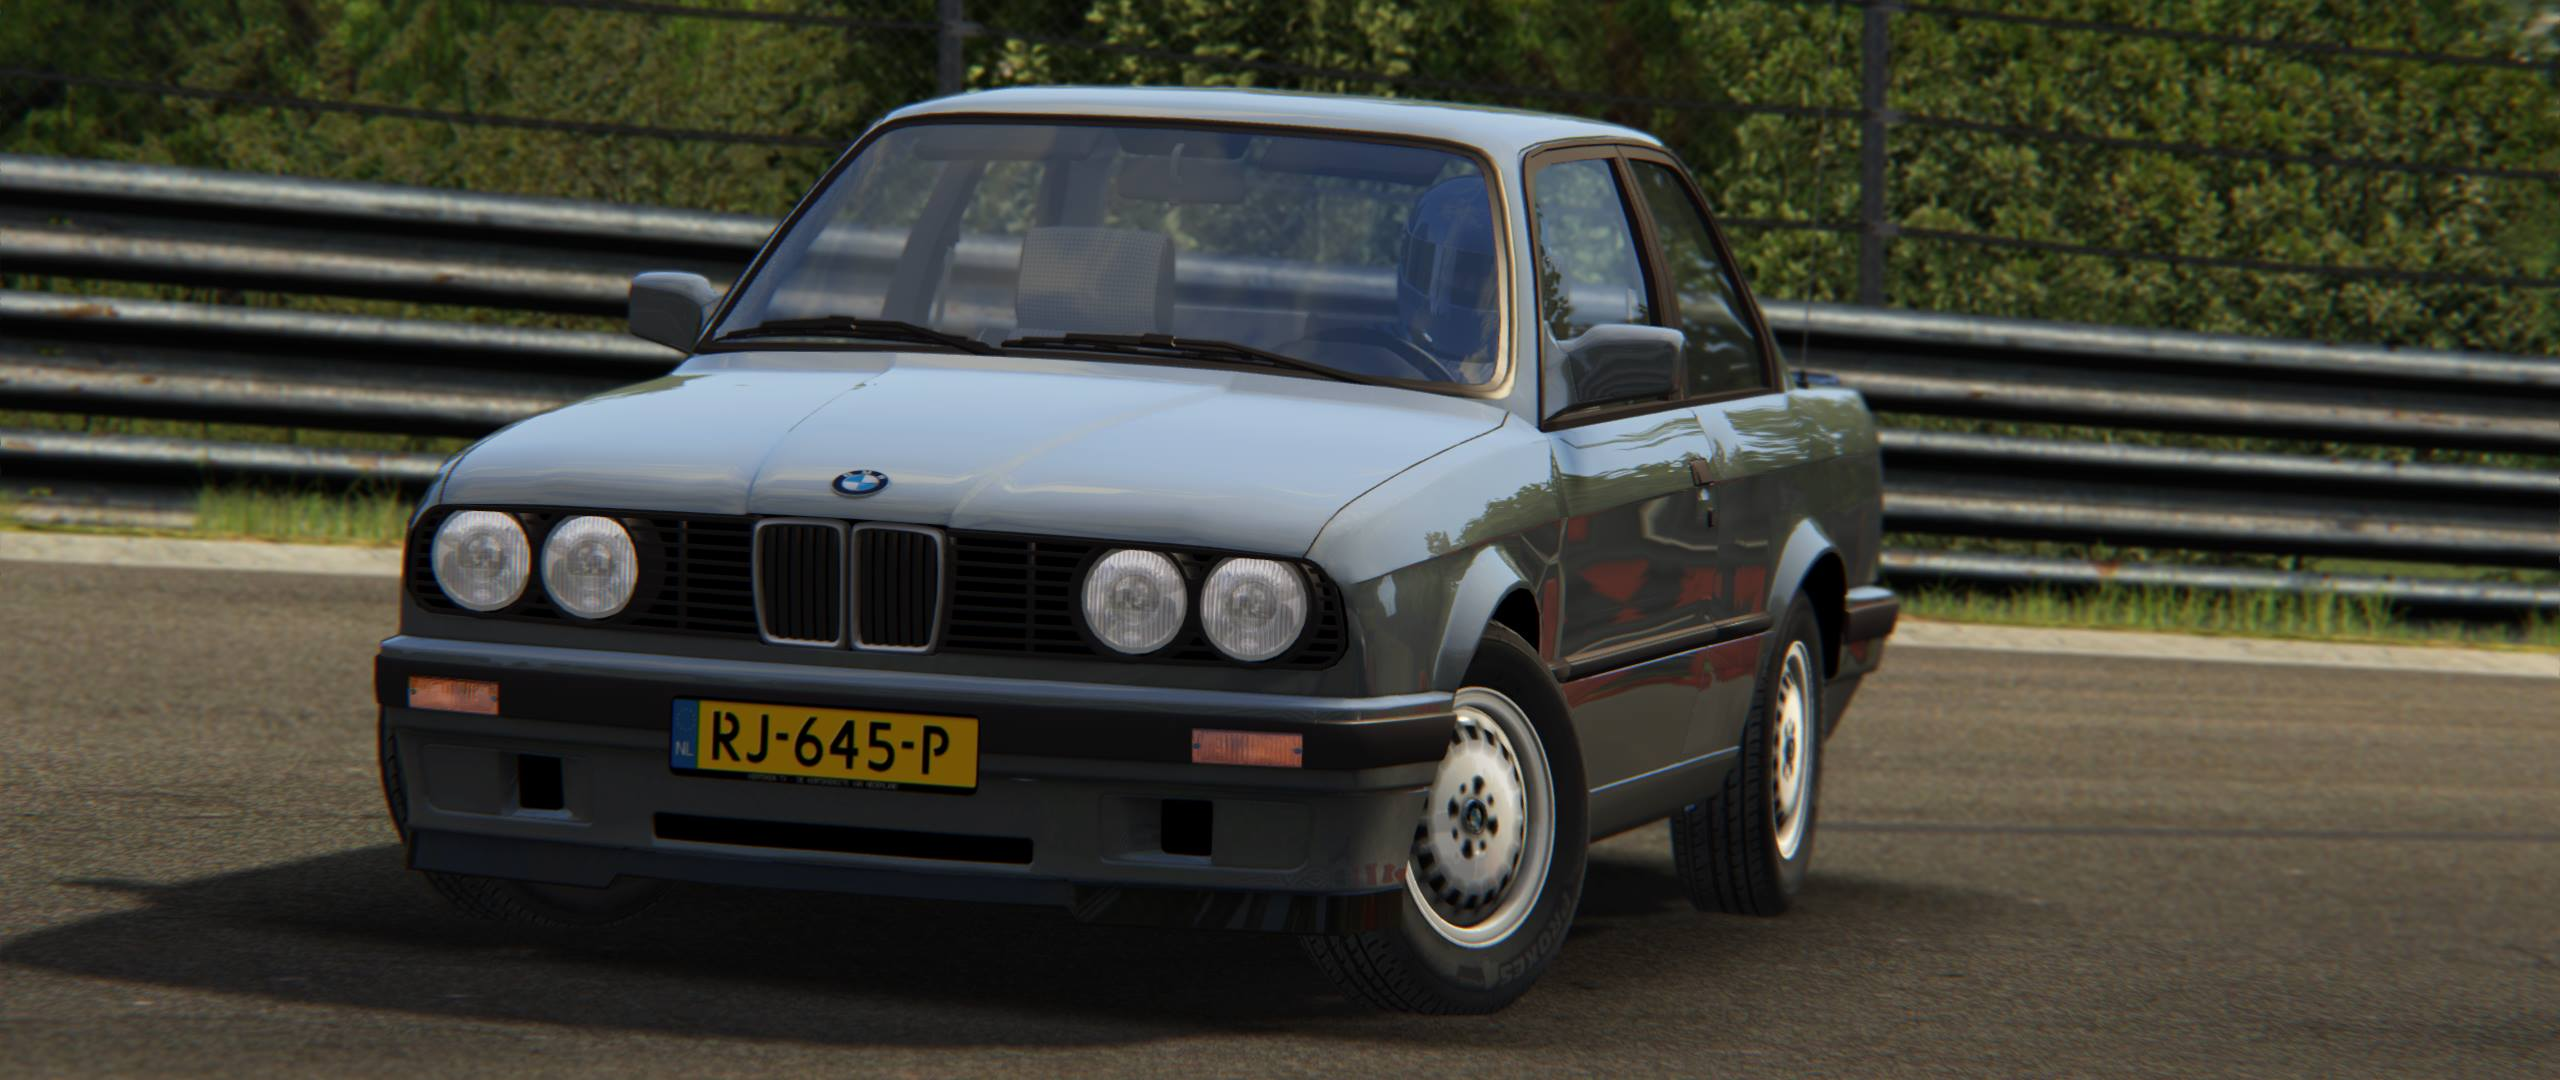 BMW E30 325i Coupe - Assetto Corsa Mods